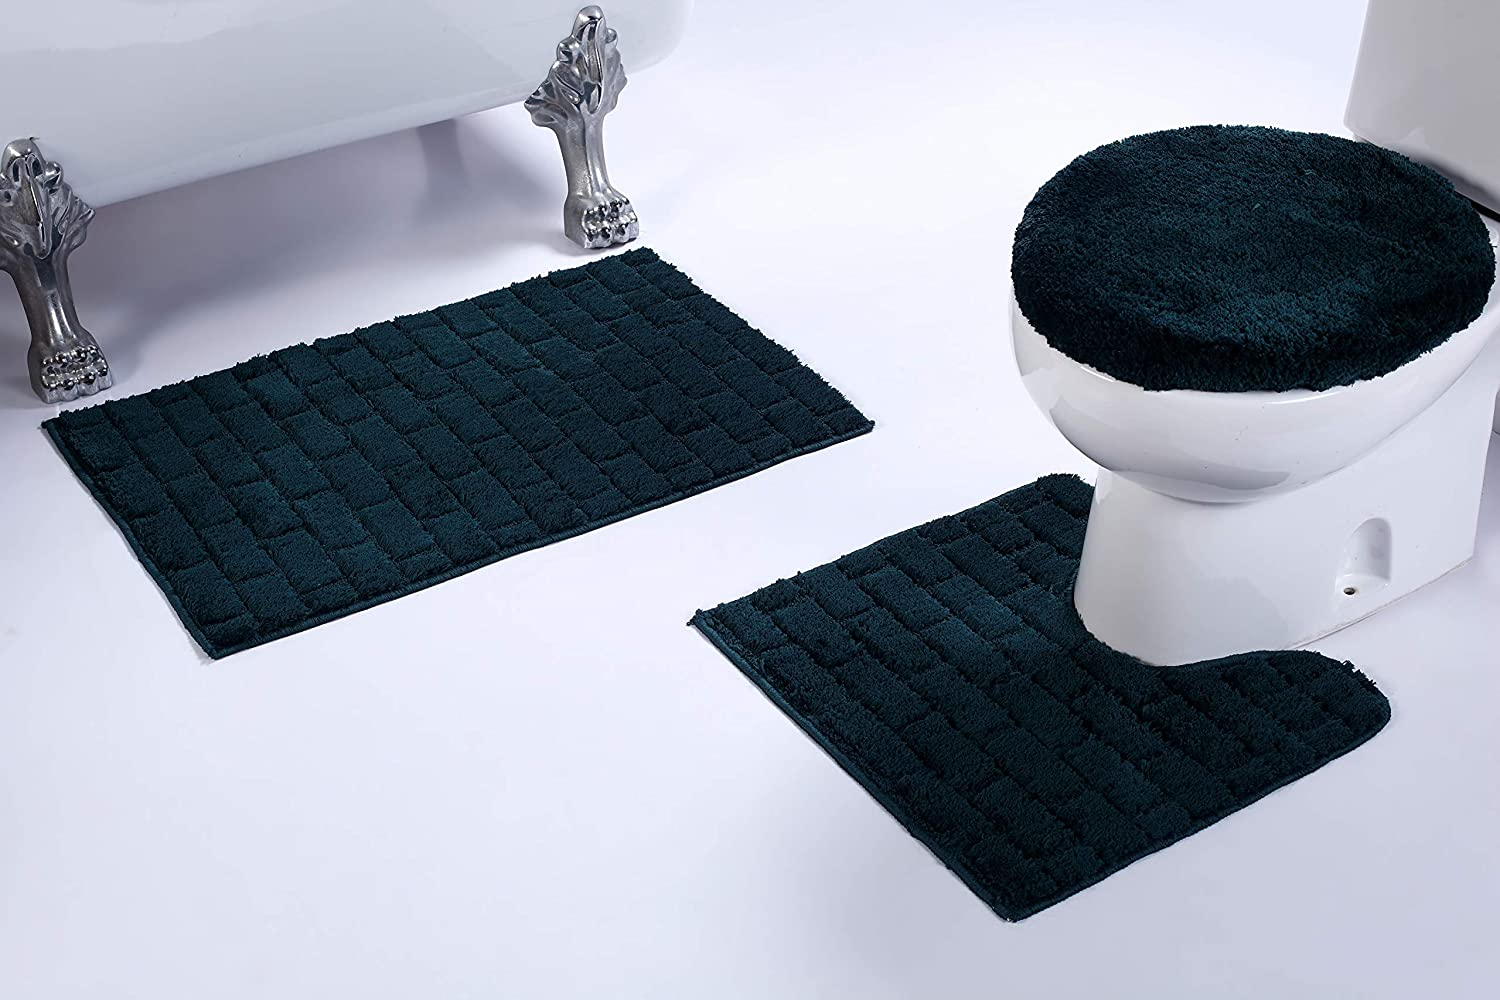 Superb Fancy Linen 3Pc Non Slip Bath Mat Set With Brick Pattern Solid Navy Blue Bathroom U Shaped Contour Rug Mat And Toilet Lid Cover New Bath 67 Machost Co Dining Chair Design Ideas Machostcouk